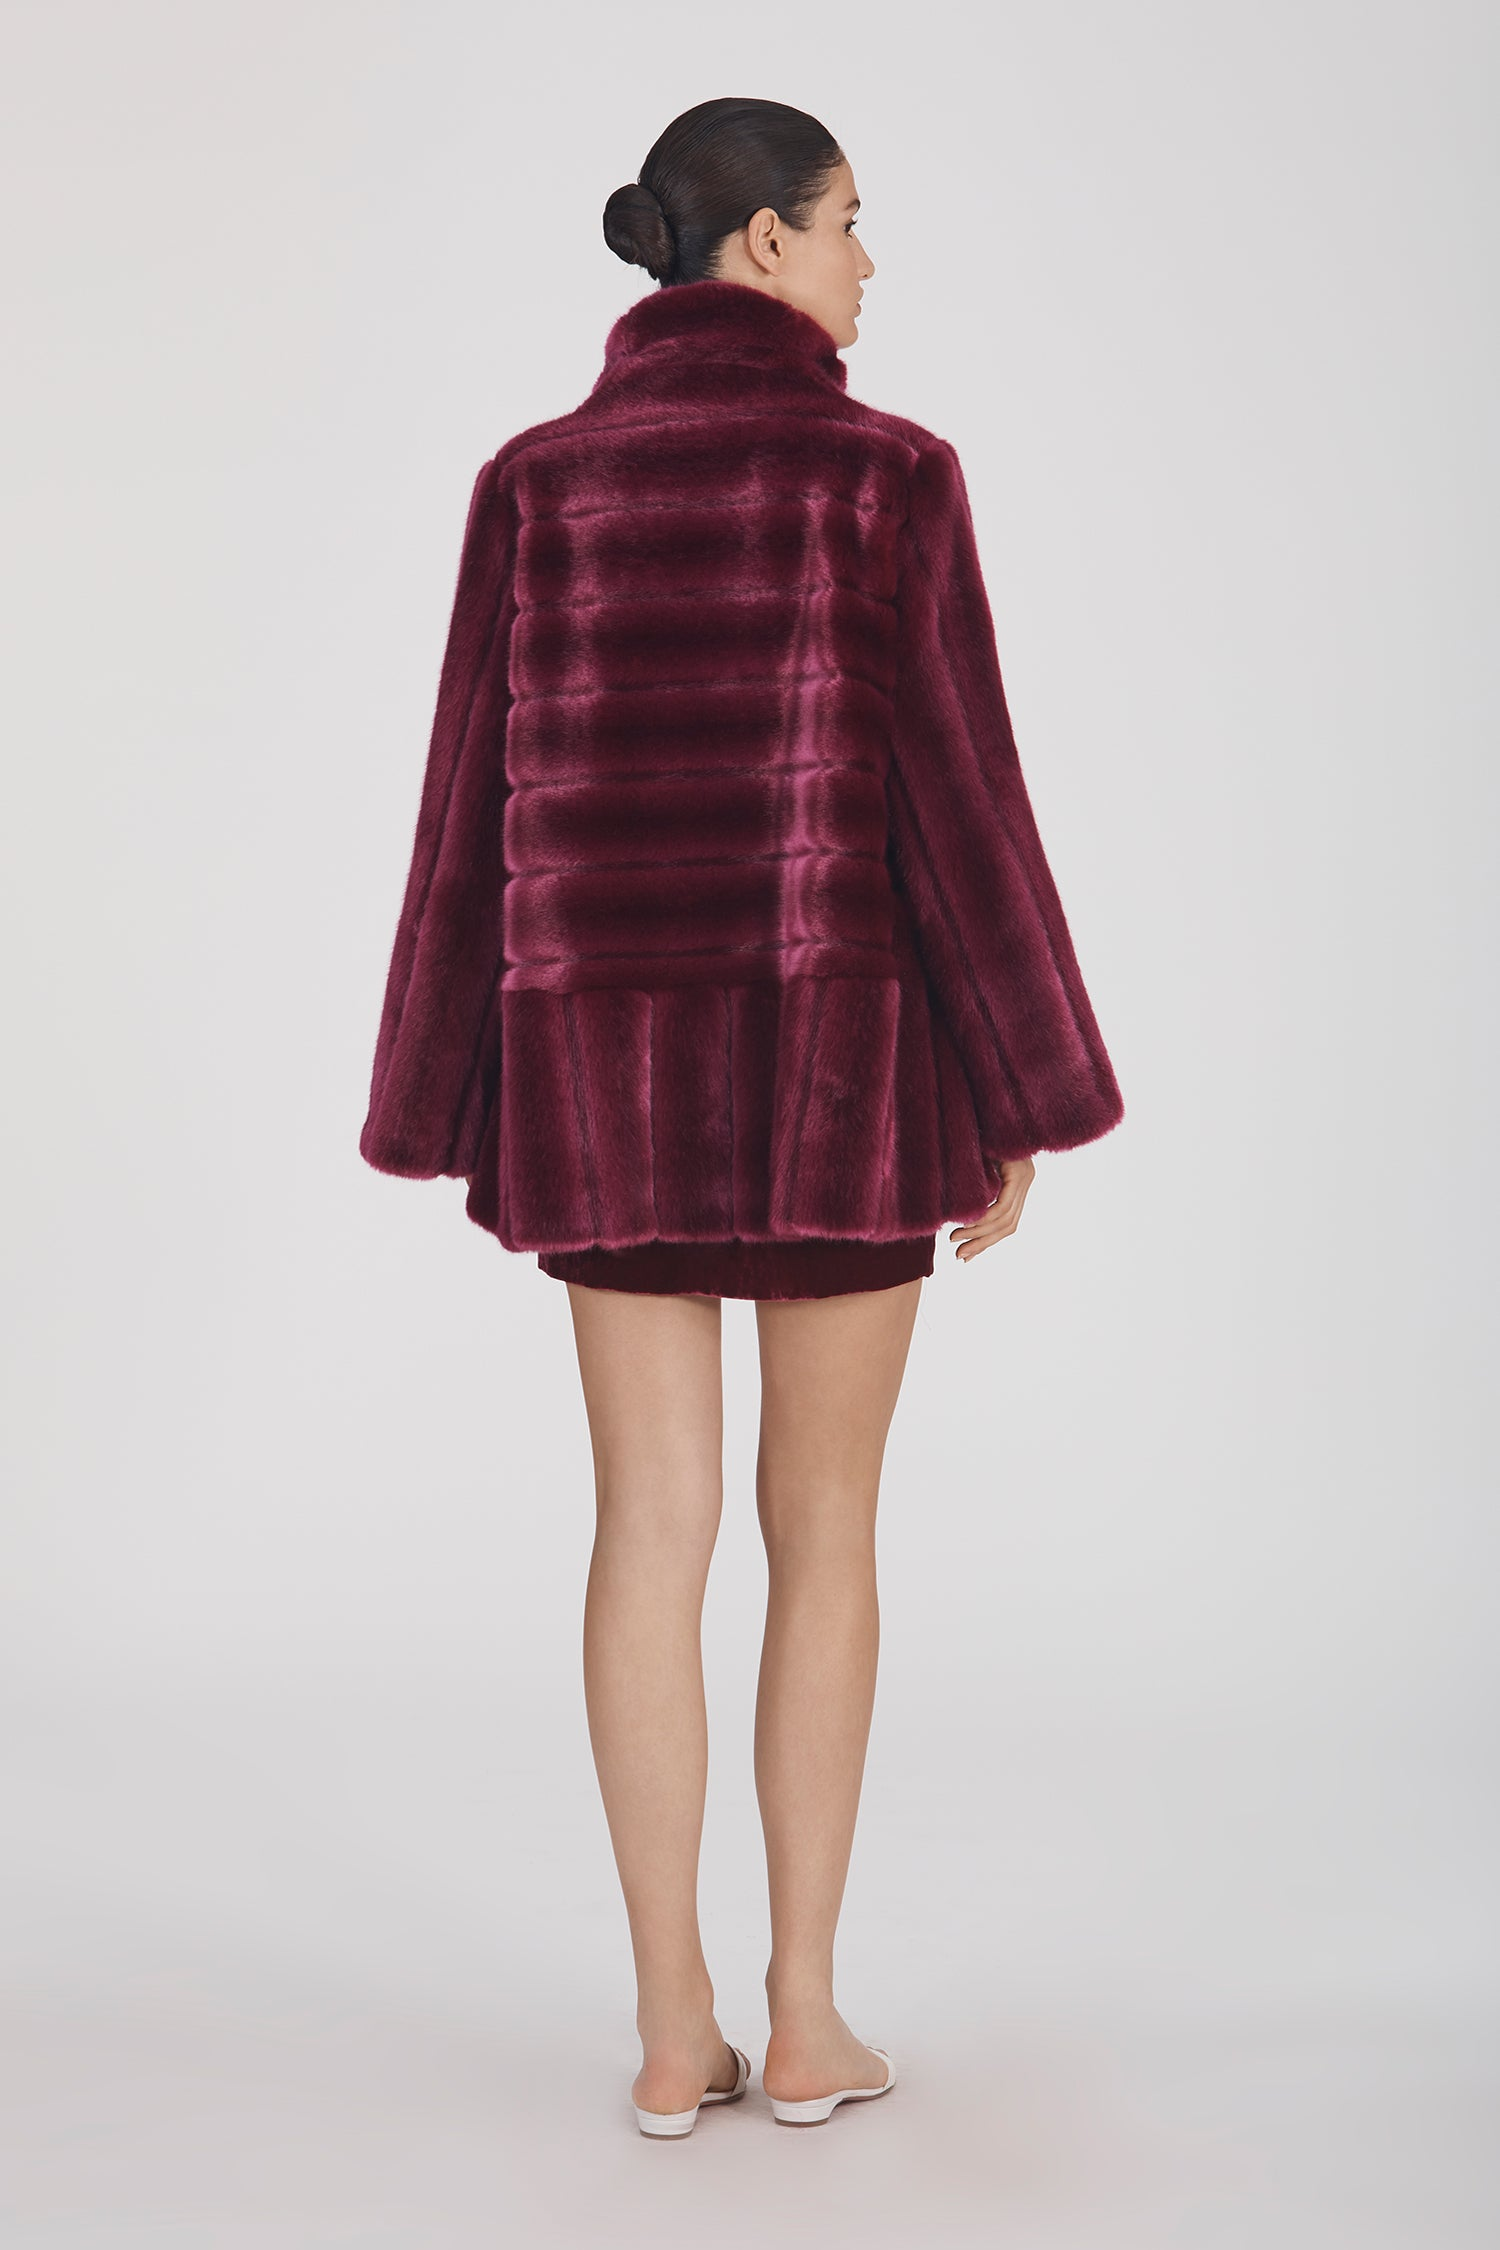 Marei1998 Yoshino Coat In Bold Raspberry Hue. Perfect For Cold Weather, This It Is Made From Plush Faux Fur, Which Feels So Warm And Comfortable. Cut In A Slight A-Lined Shape And Fully Lined, It Is Ideal For Smooth Layering. Side View.